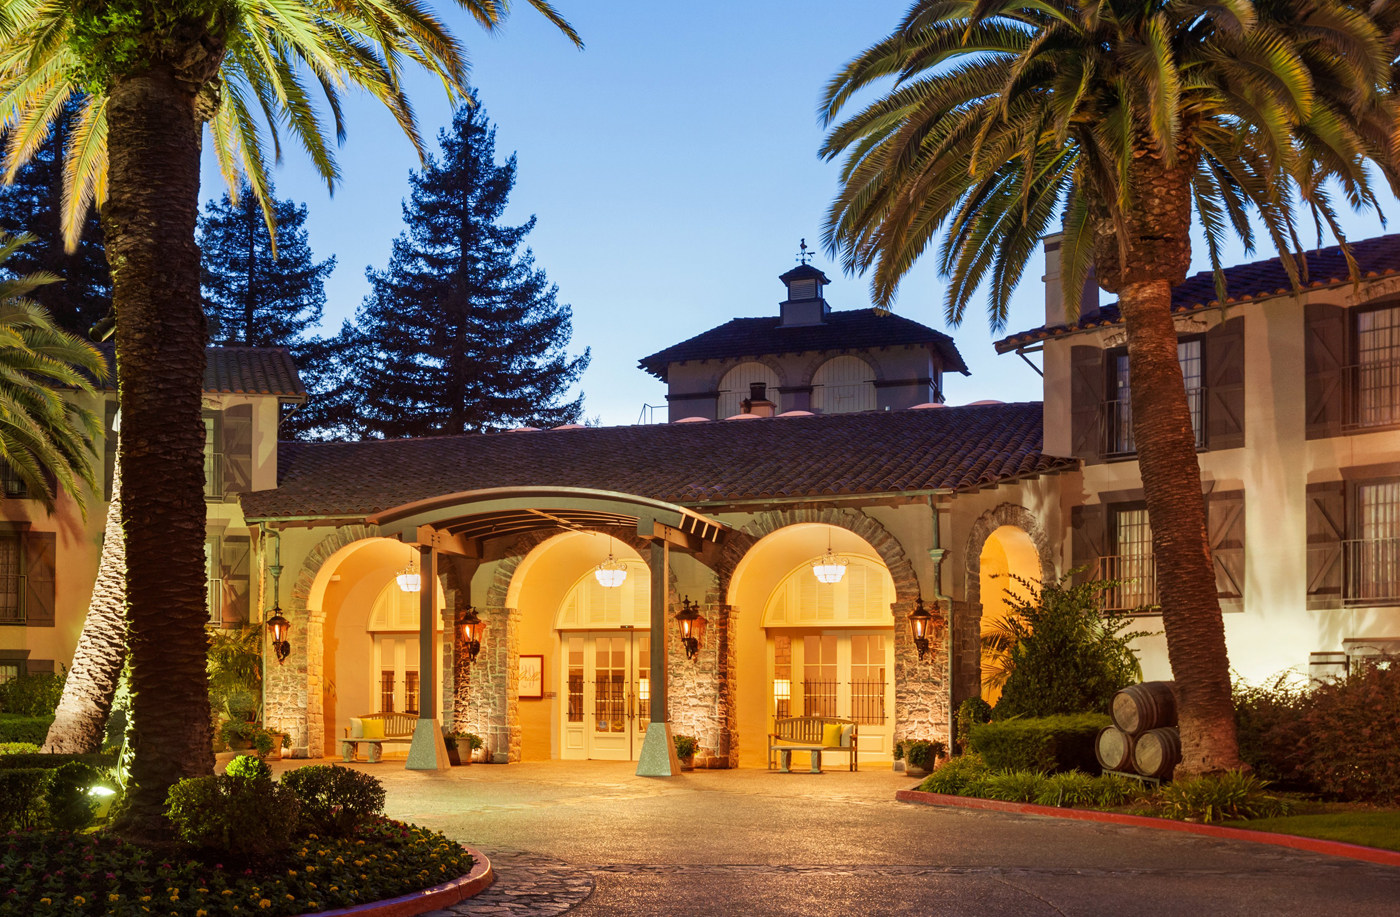 Embassy Suites Napa Valley Exterior Eve Gallery